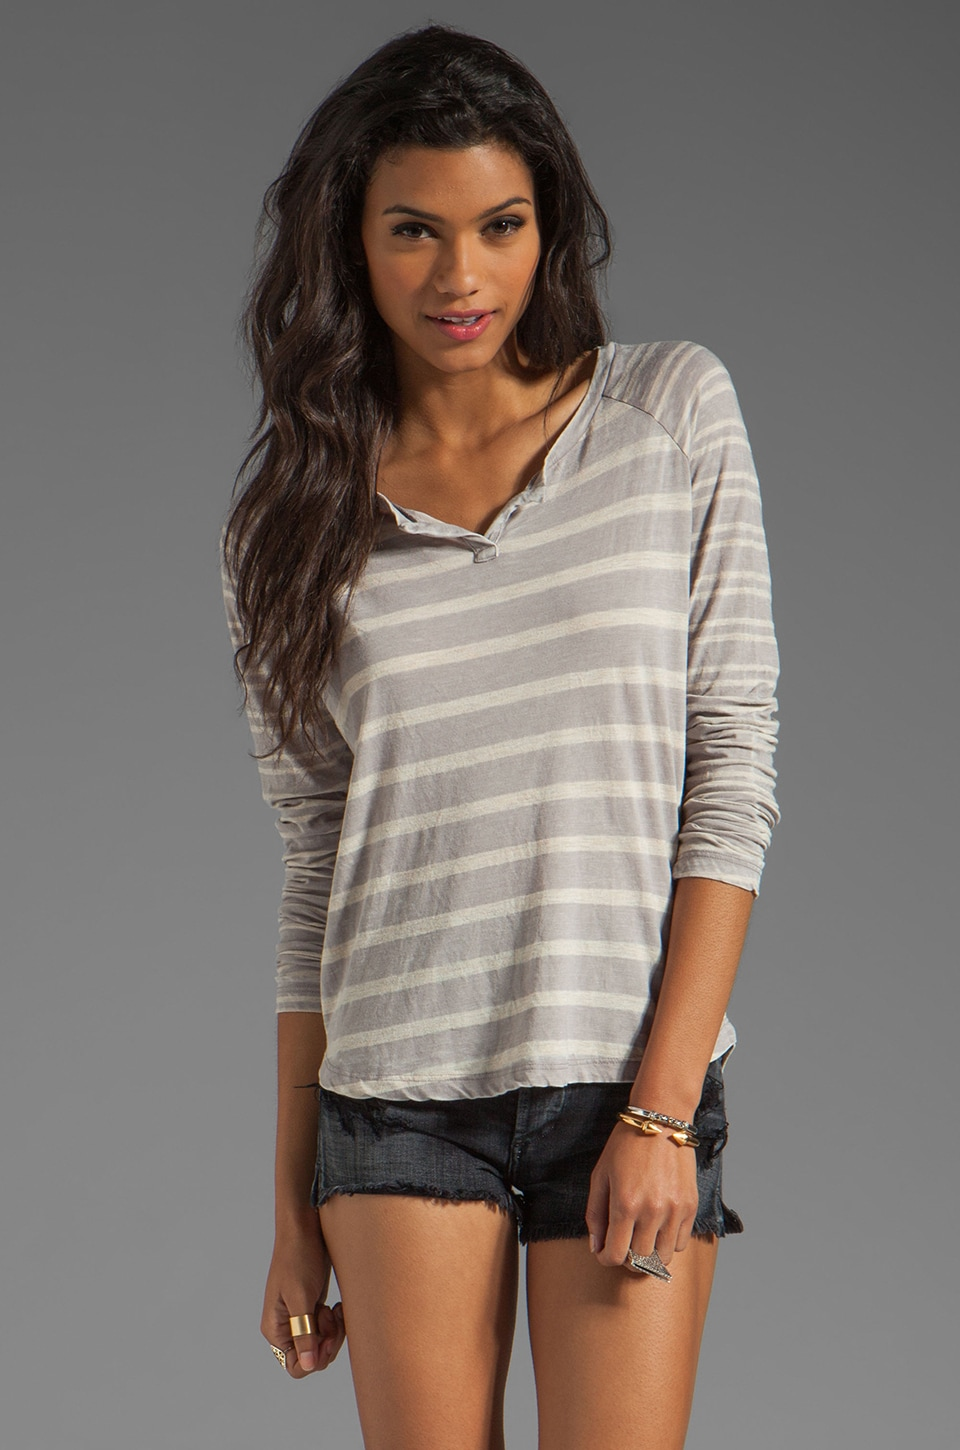 Splendid Sugarcane Stripe Top in Storm